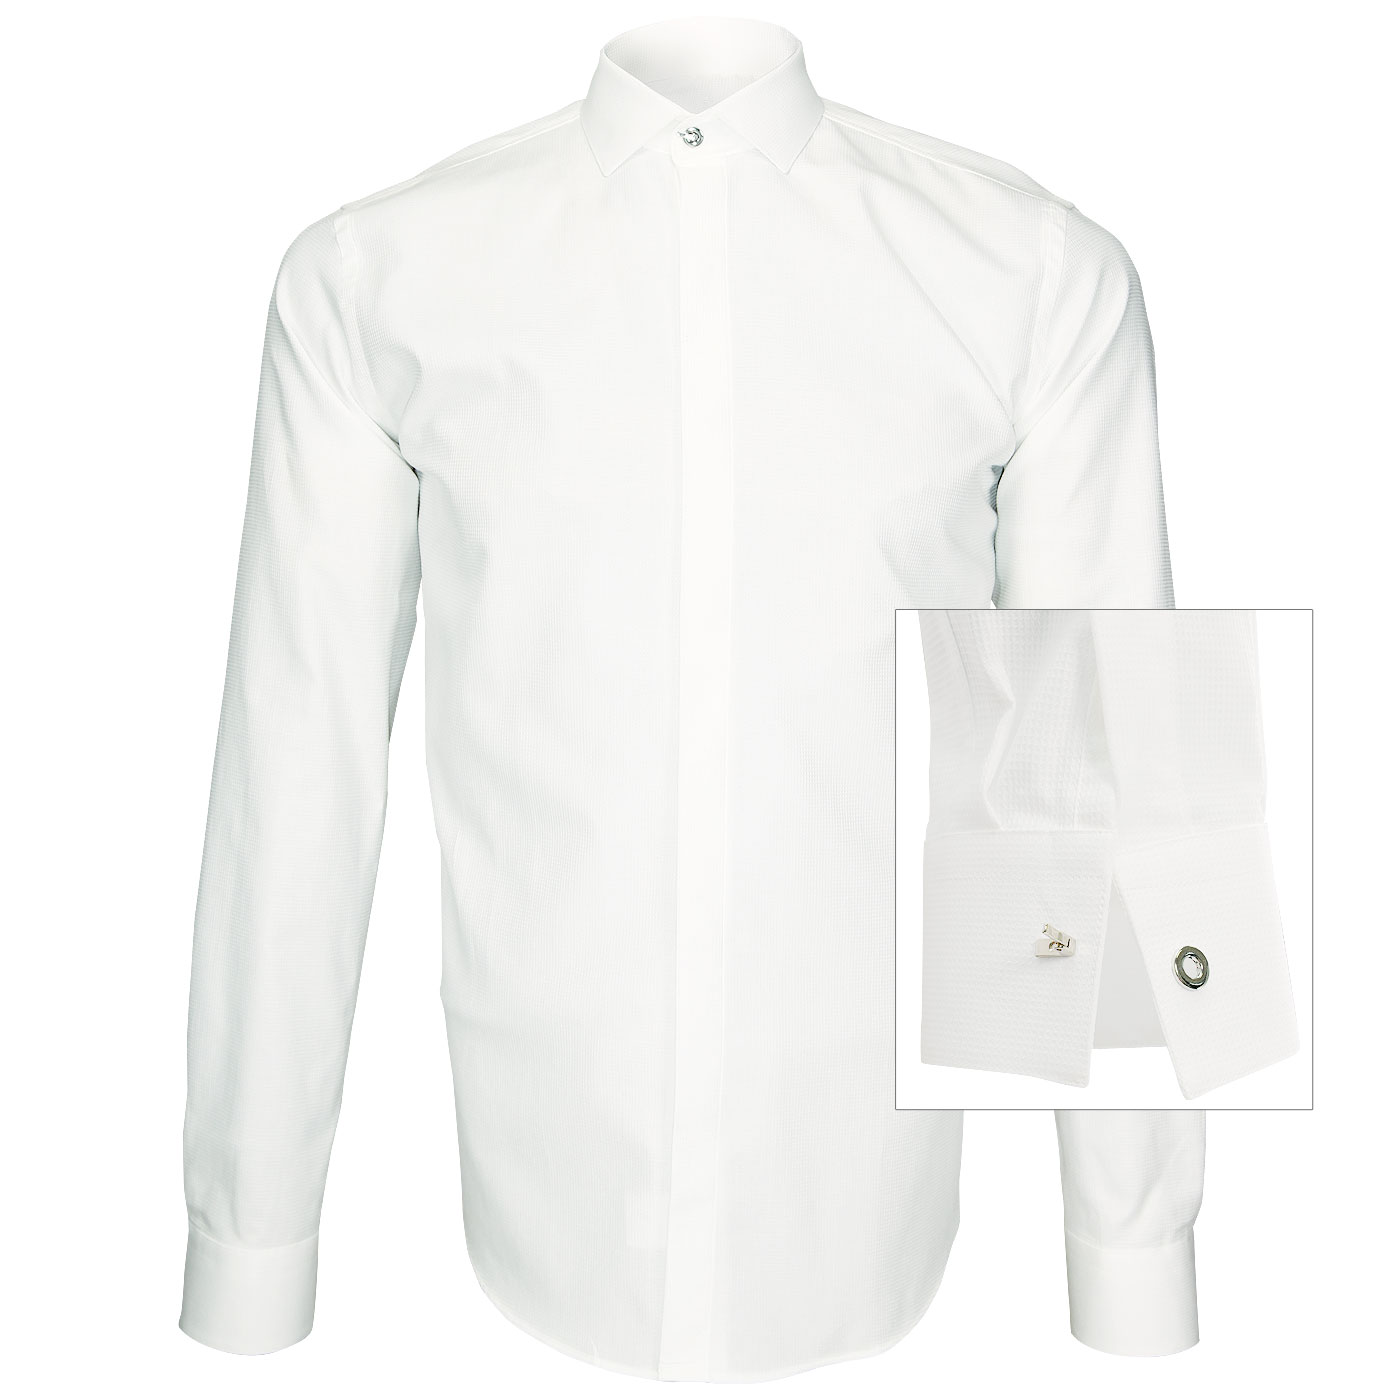 Chemise Blanche: l'Indispensable